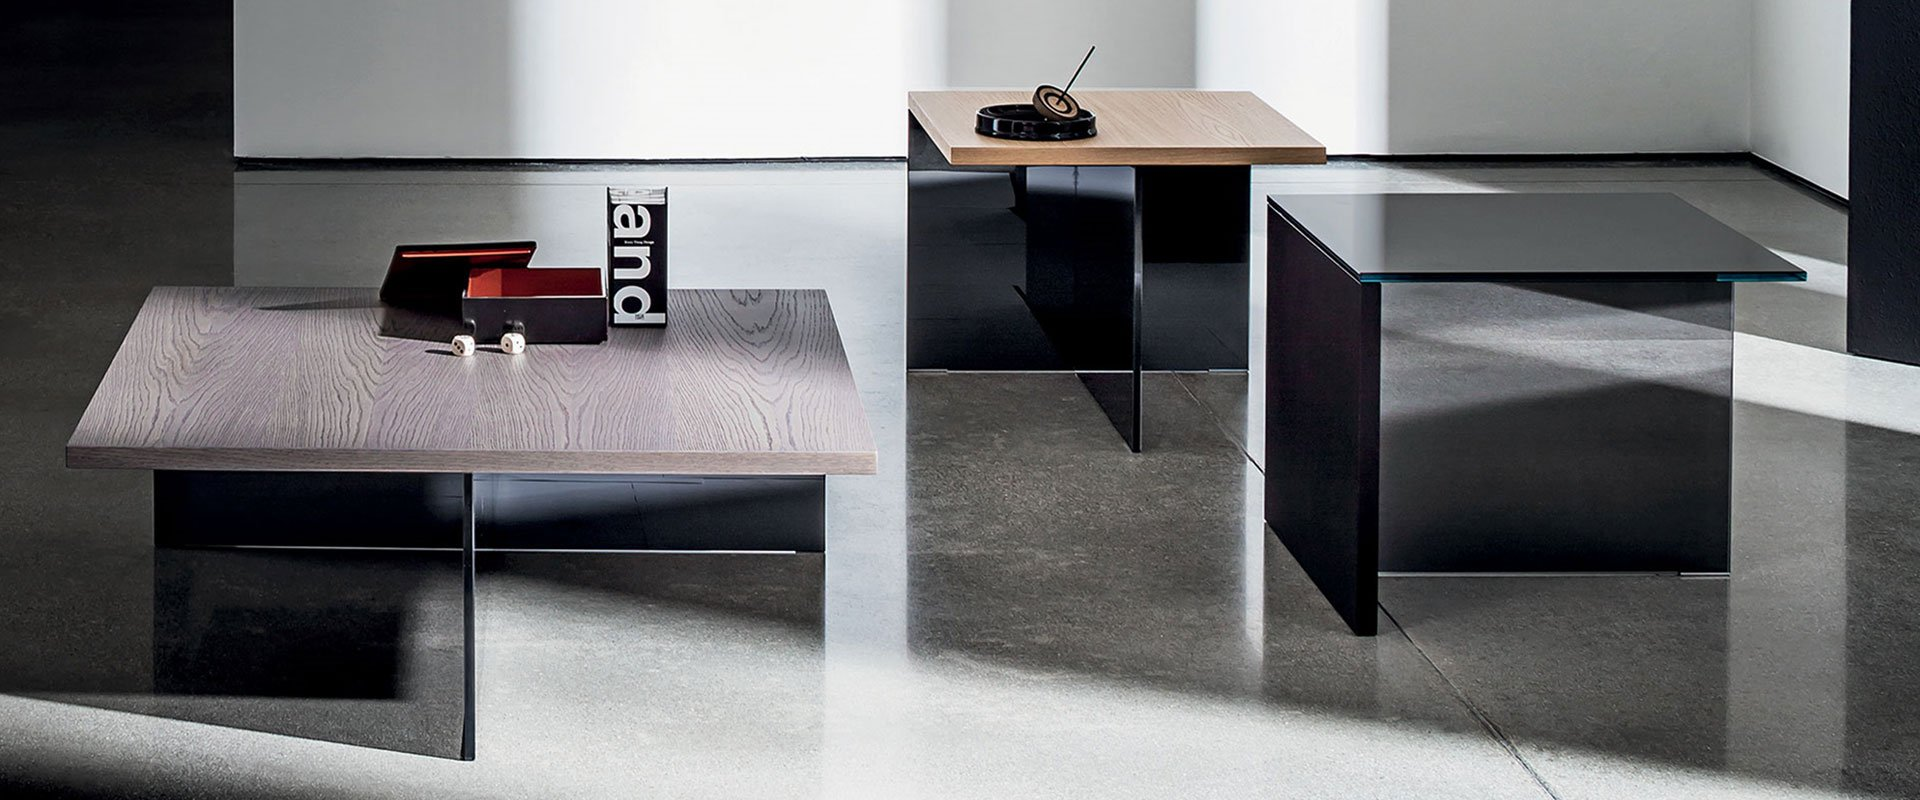 sovet italia glass furniture